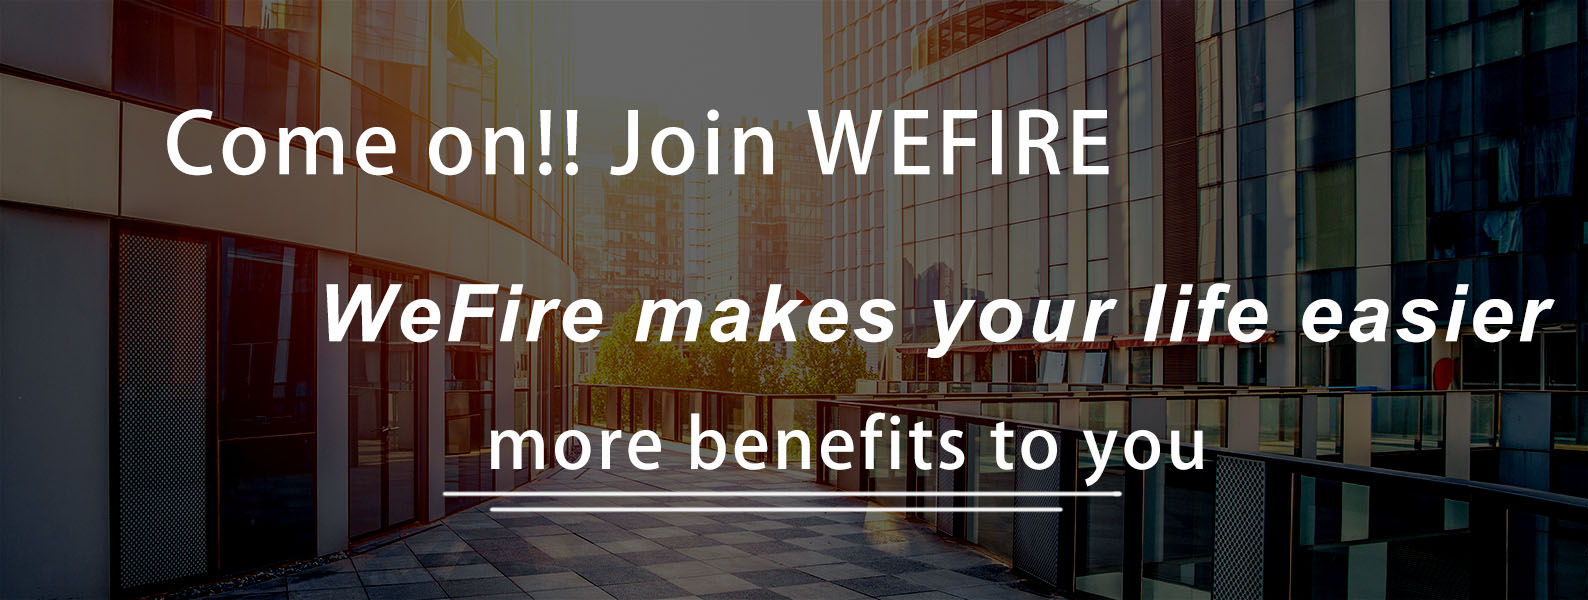 WeFire makes your life easier